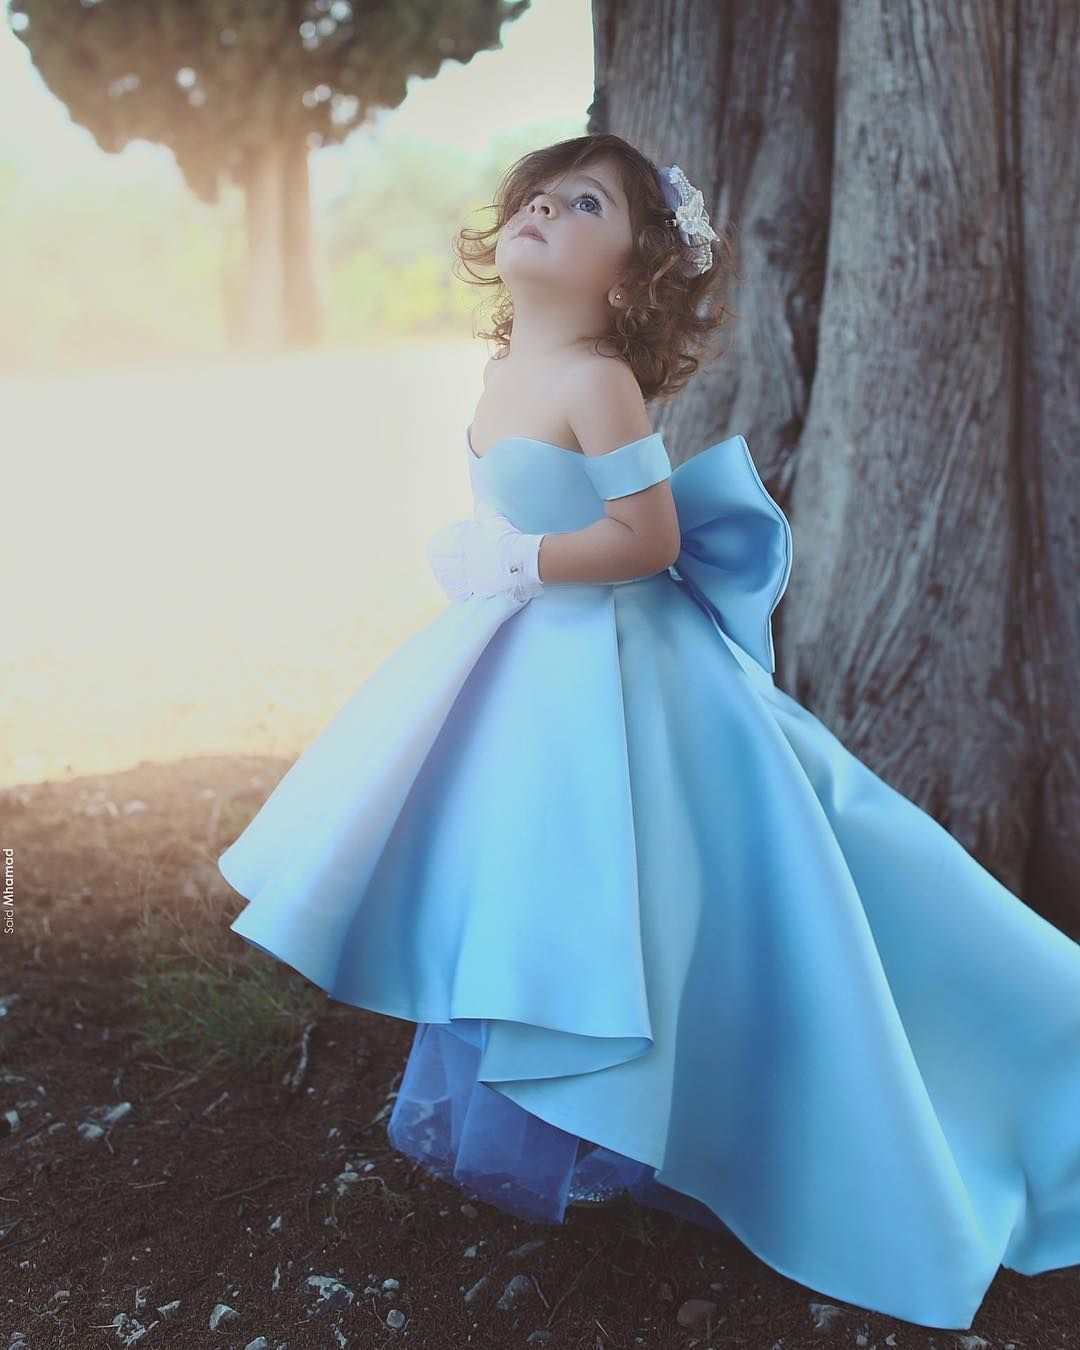 abba9e7079 Blue New Brithday Party Baby Little Kids Flower Girl Dress Princess Girls  Pageant Dresses Kids Prom Puffy Ball Gown sold by NewNewFashion on Storenvy